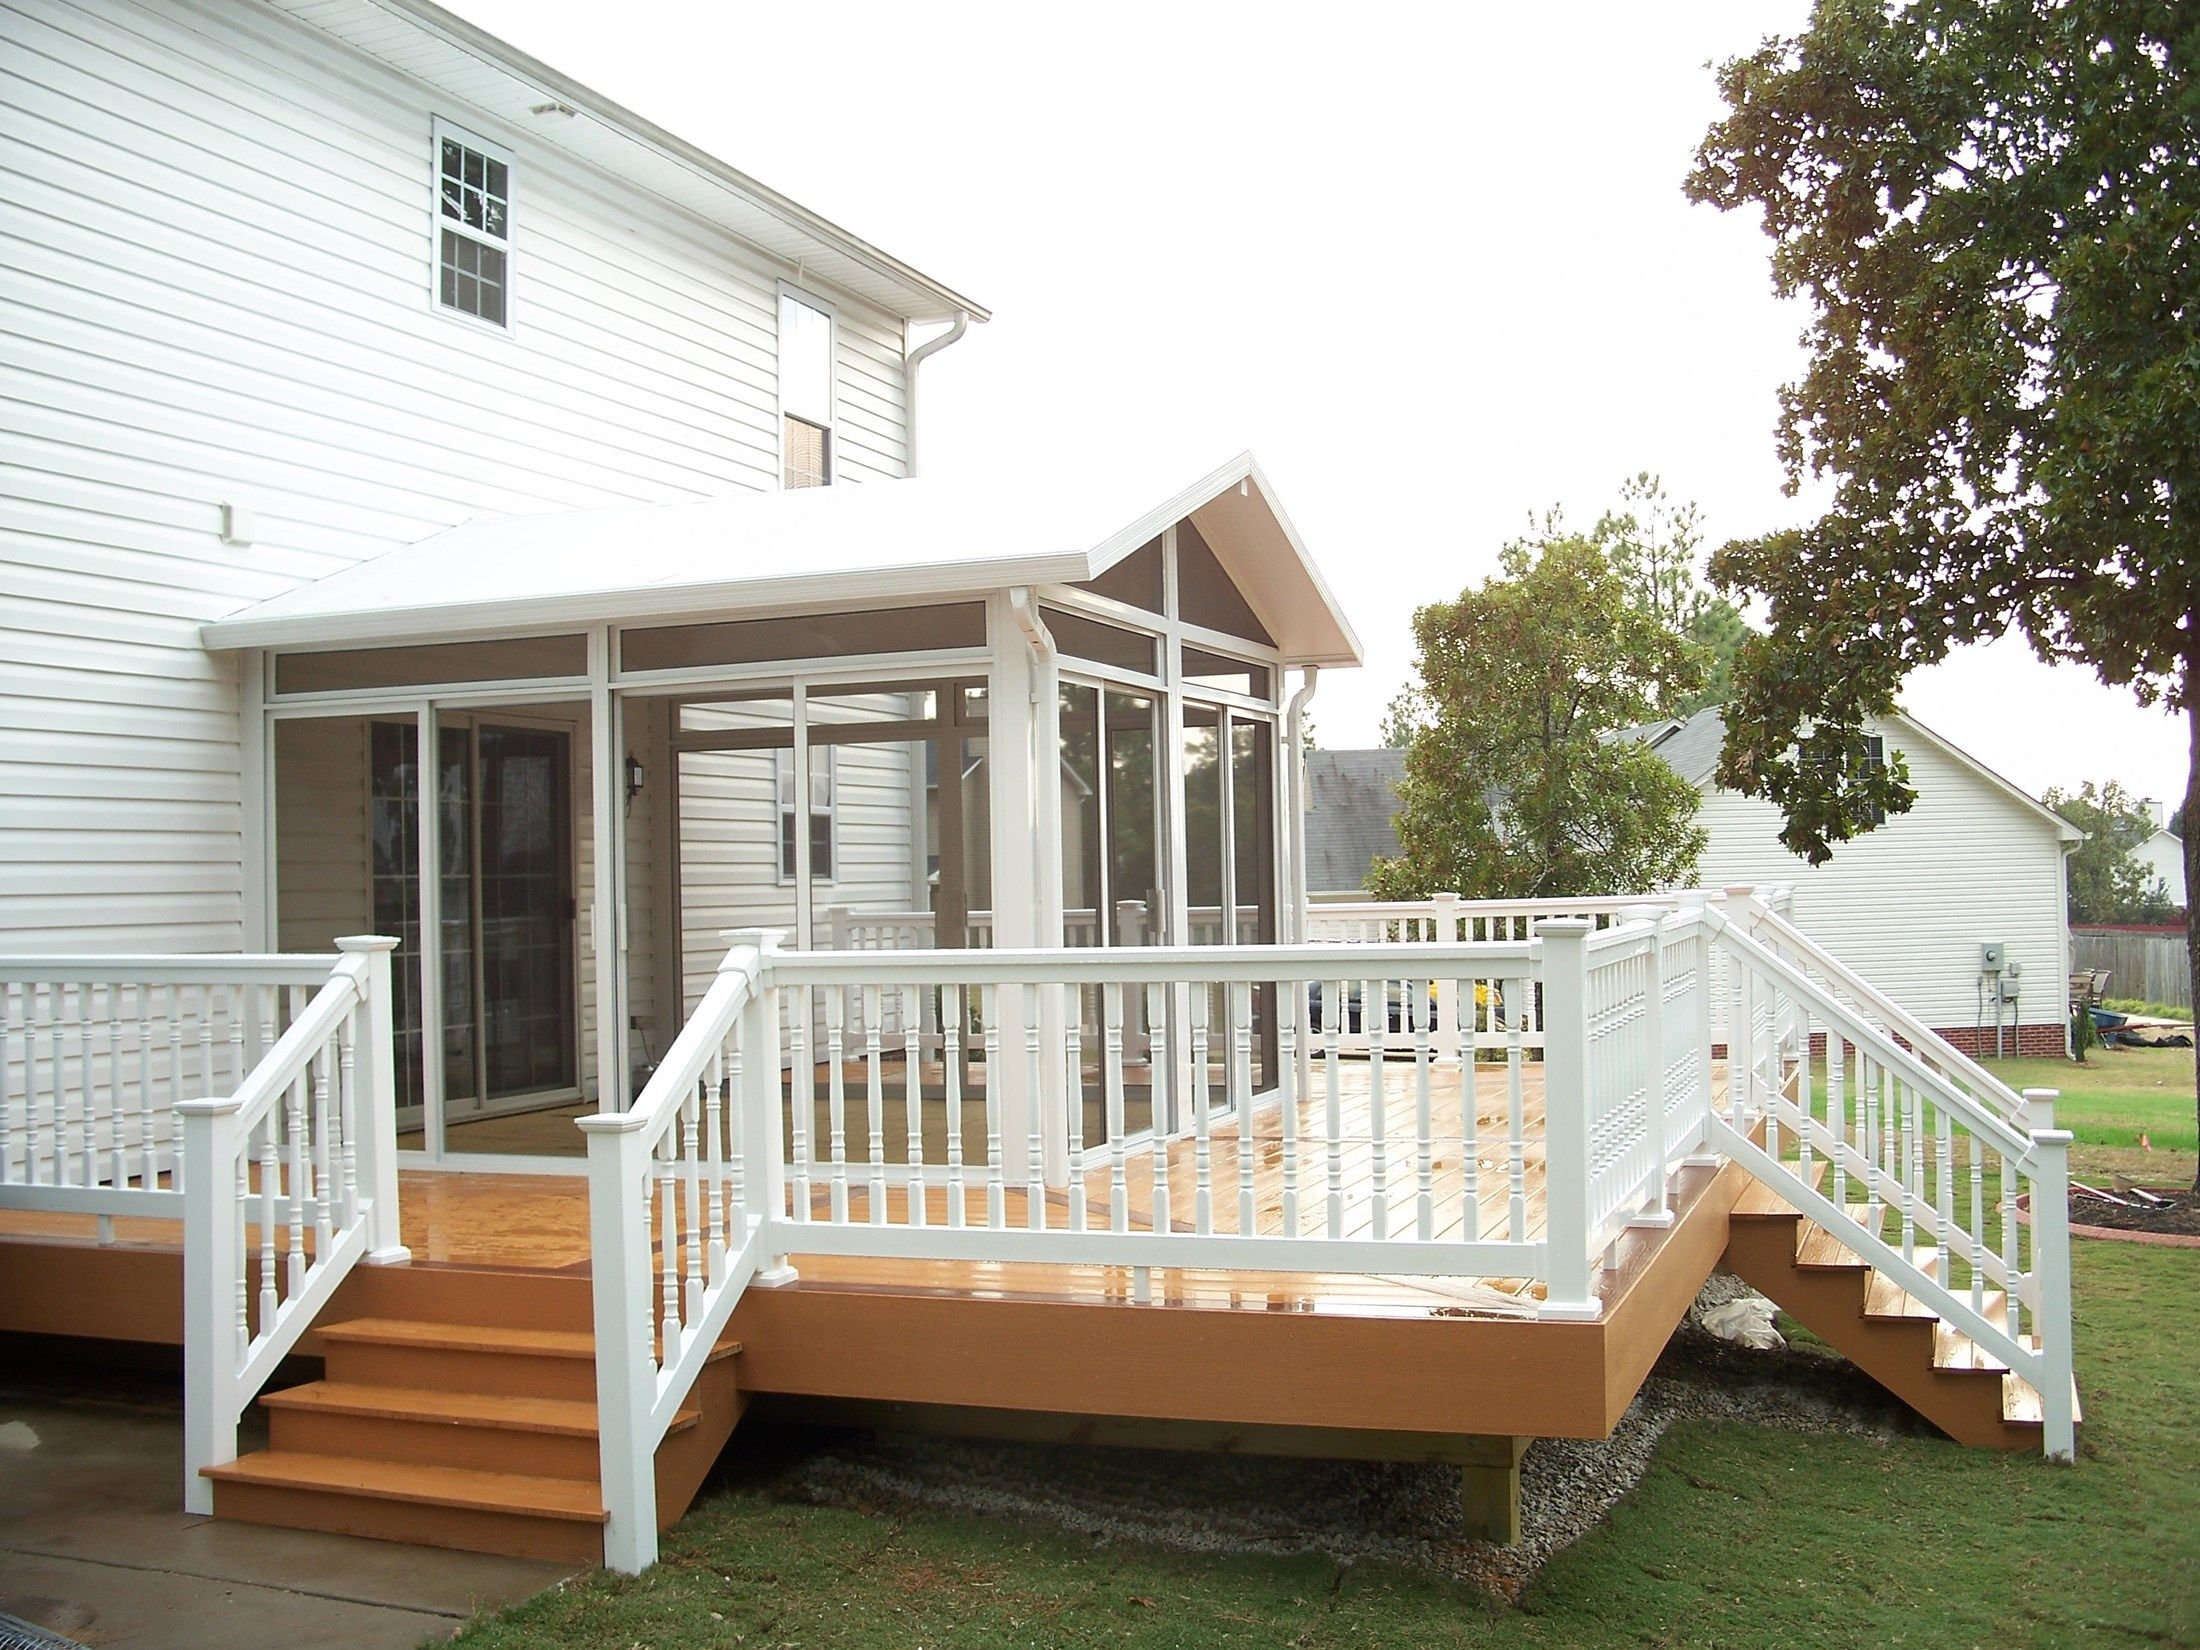 Attaching deck to house with siding - 2 Pictures